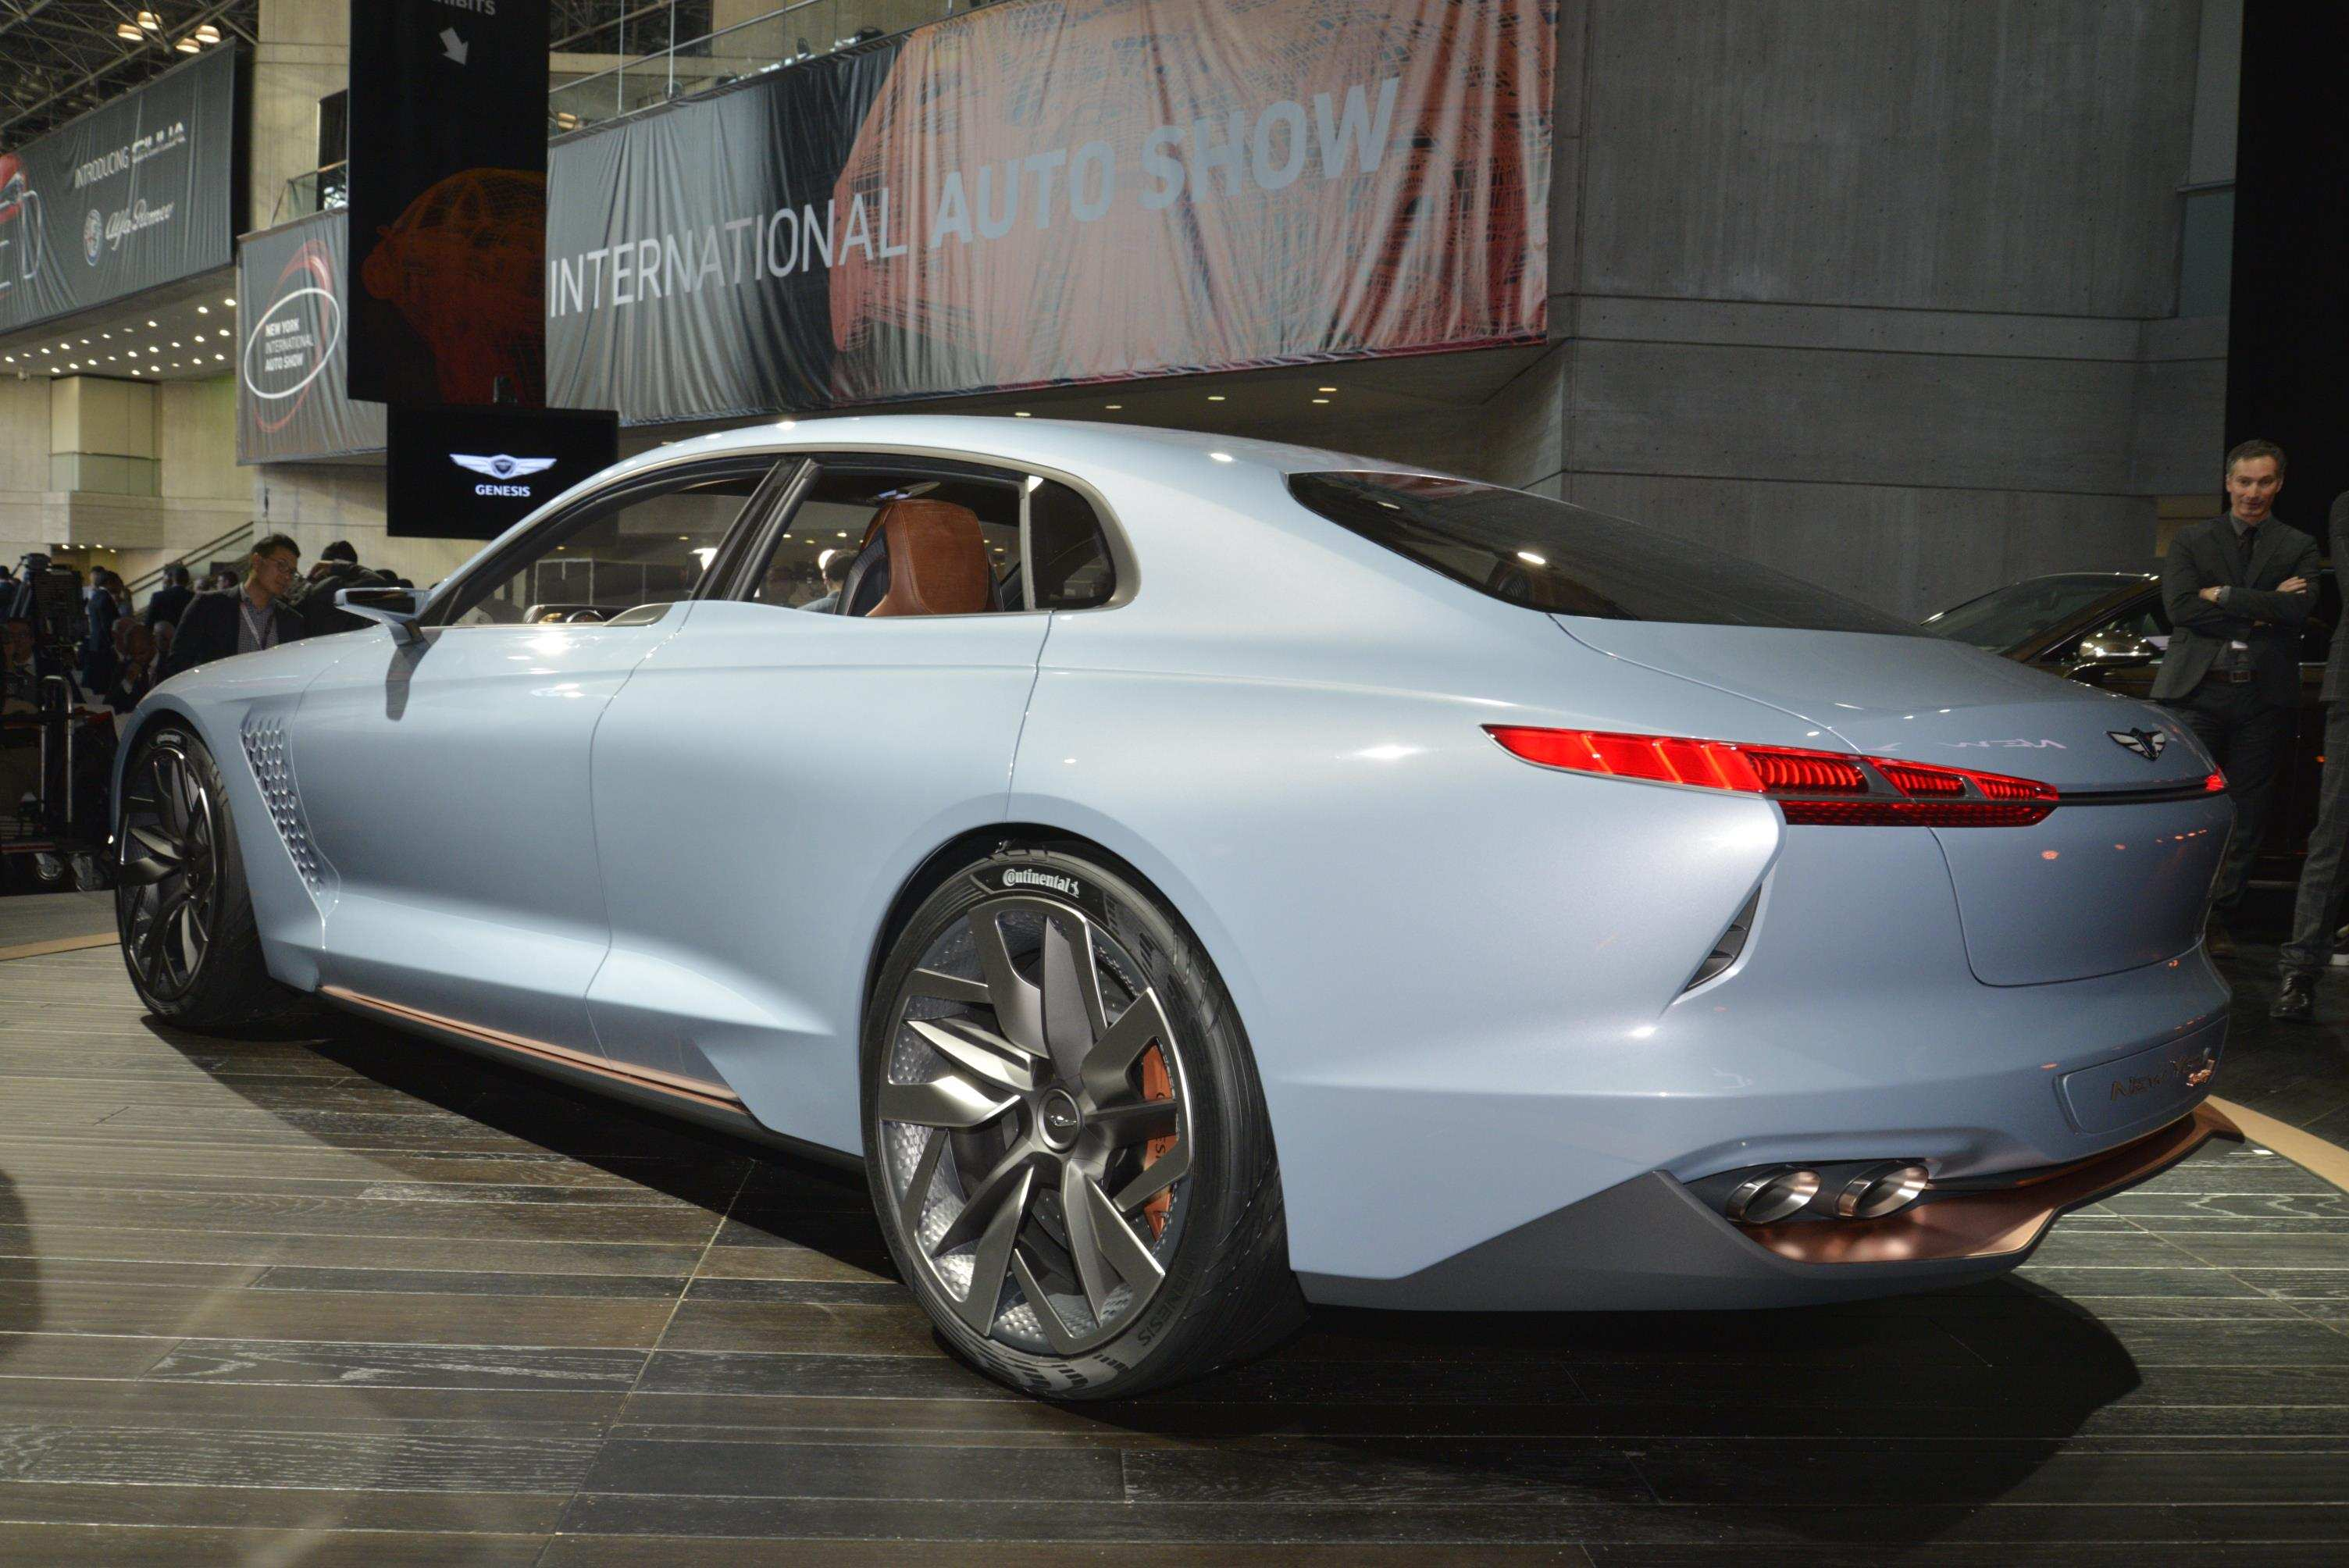 71 All New 2020 Hyundai Coupe Engine With 2020 Hyundai Coupe